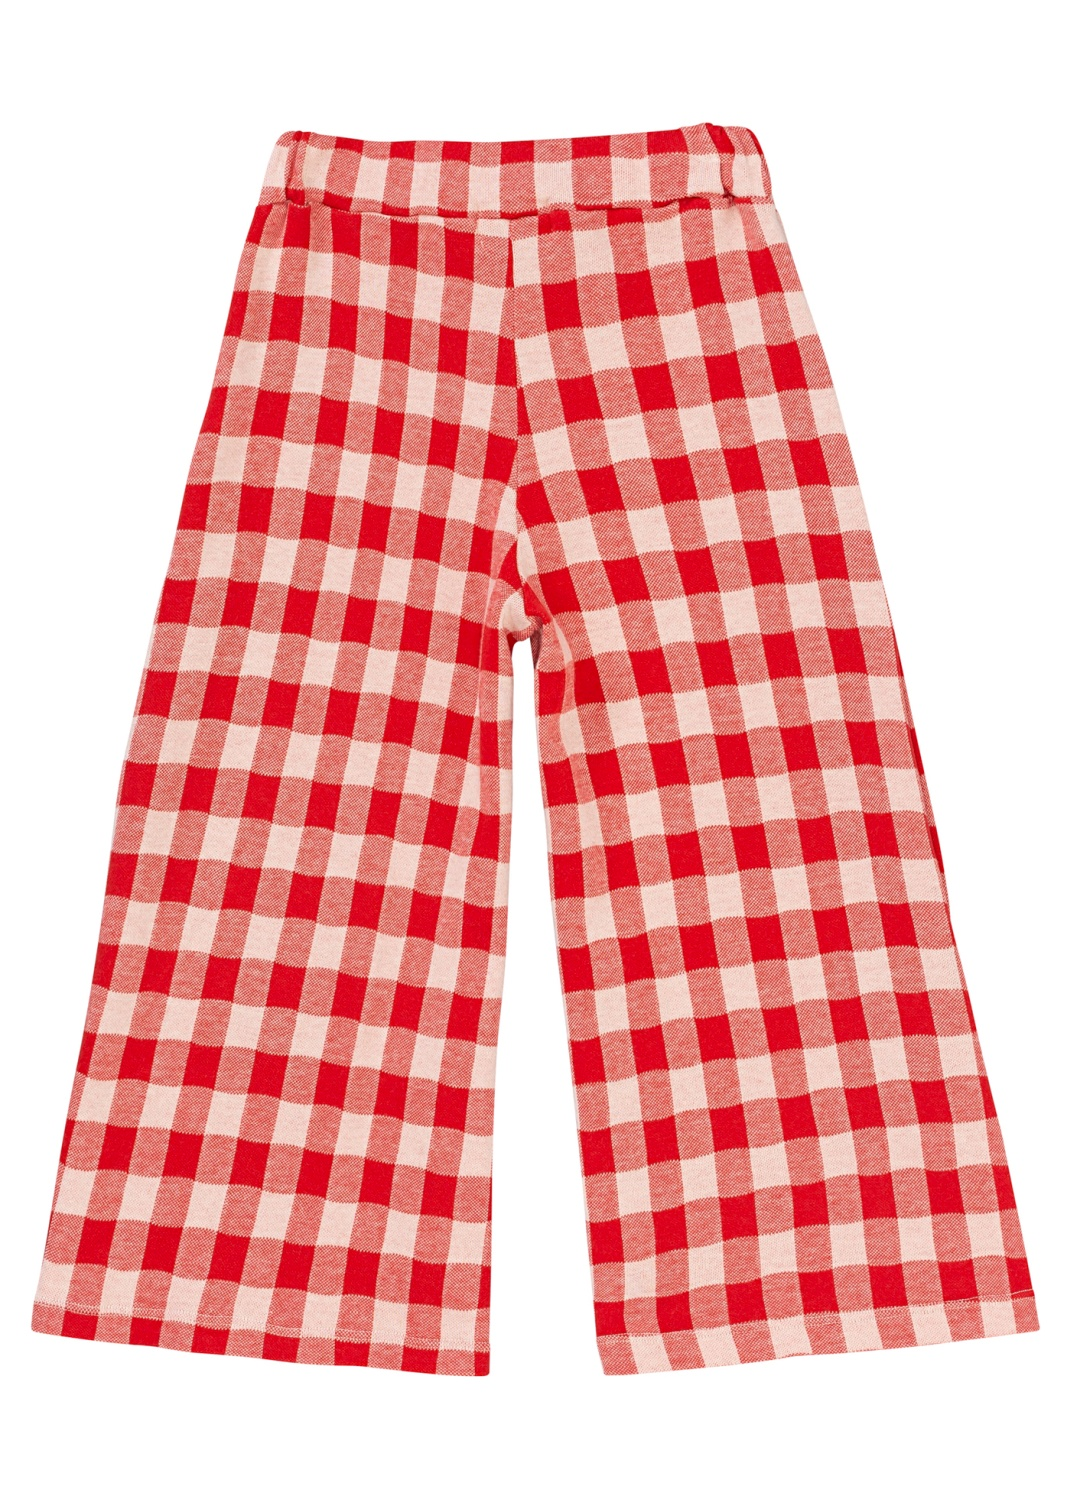 Vichy Culotte image number 1